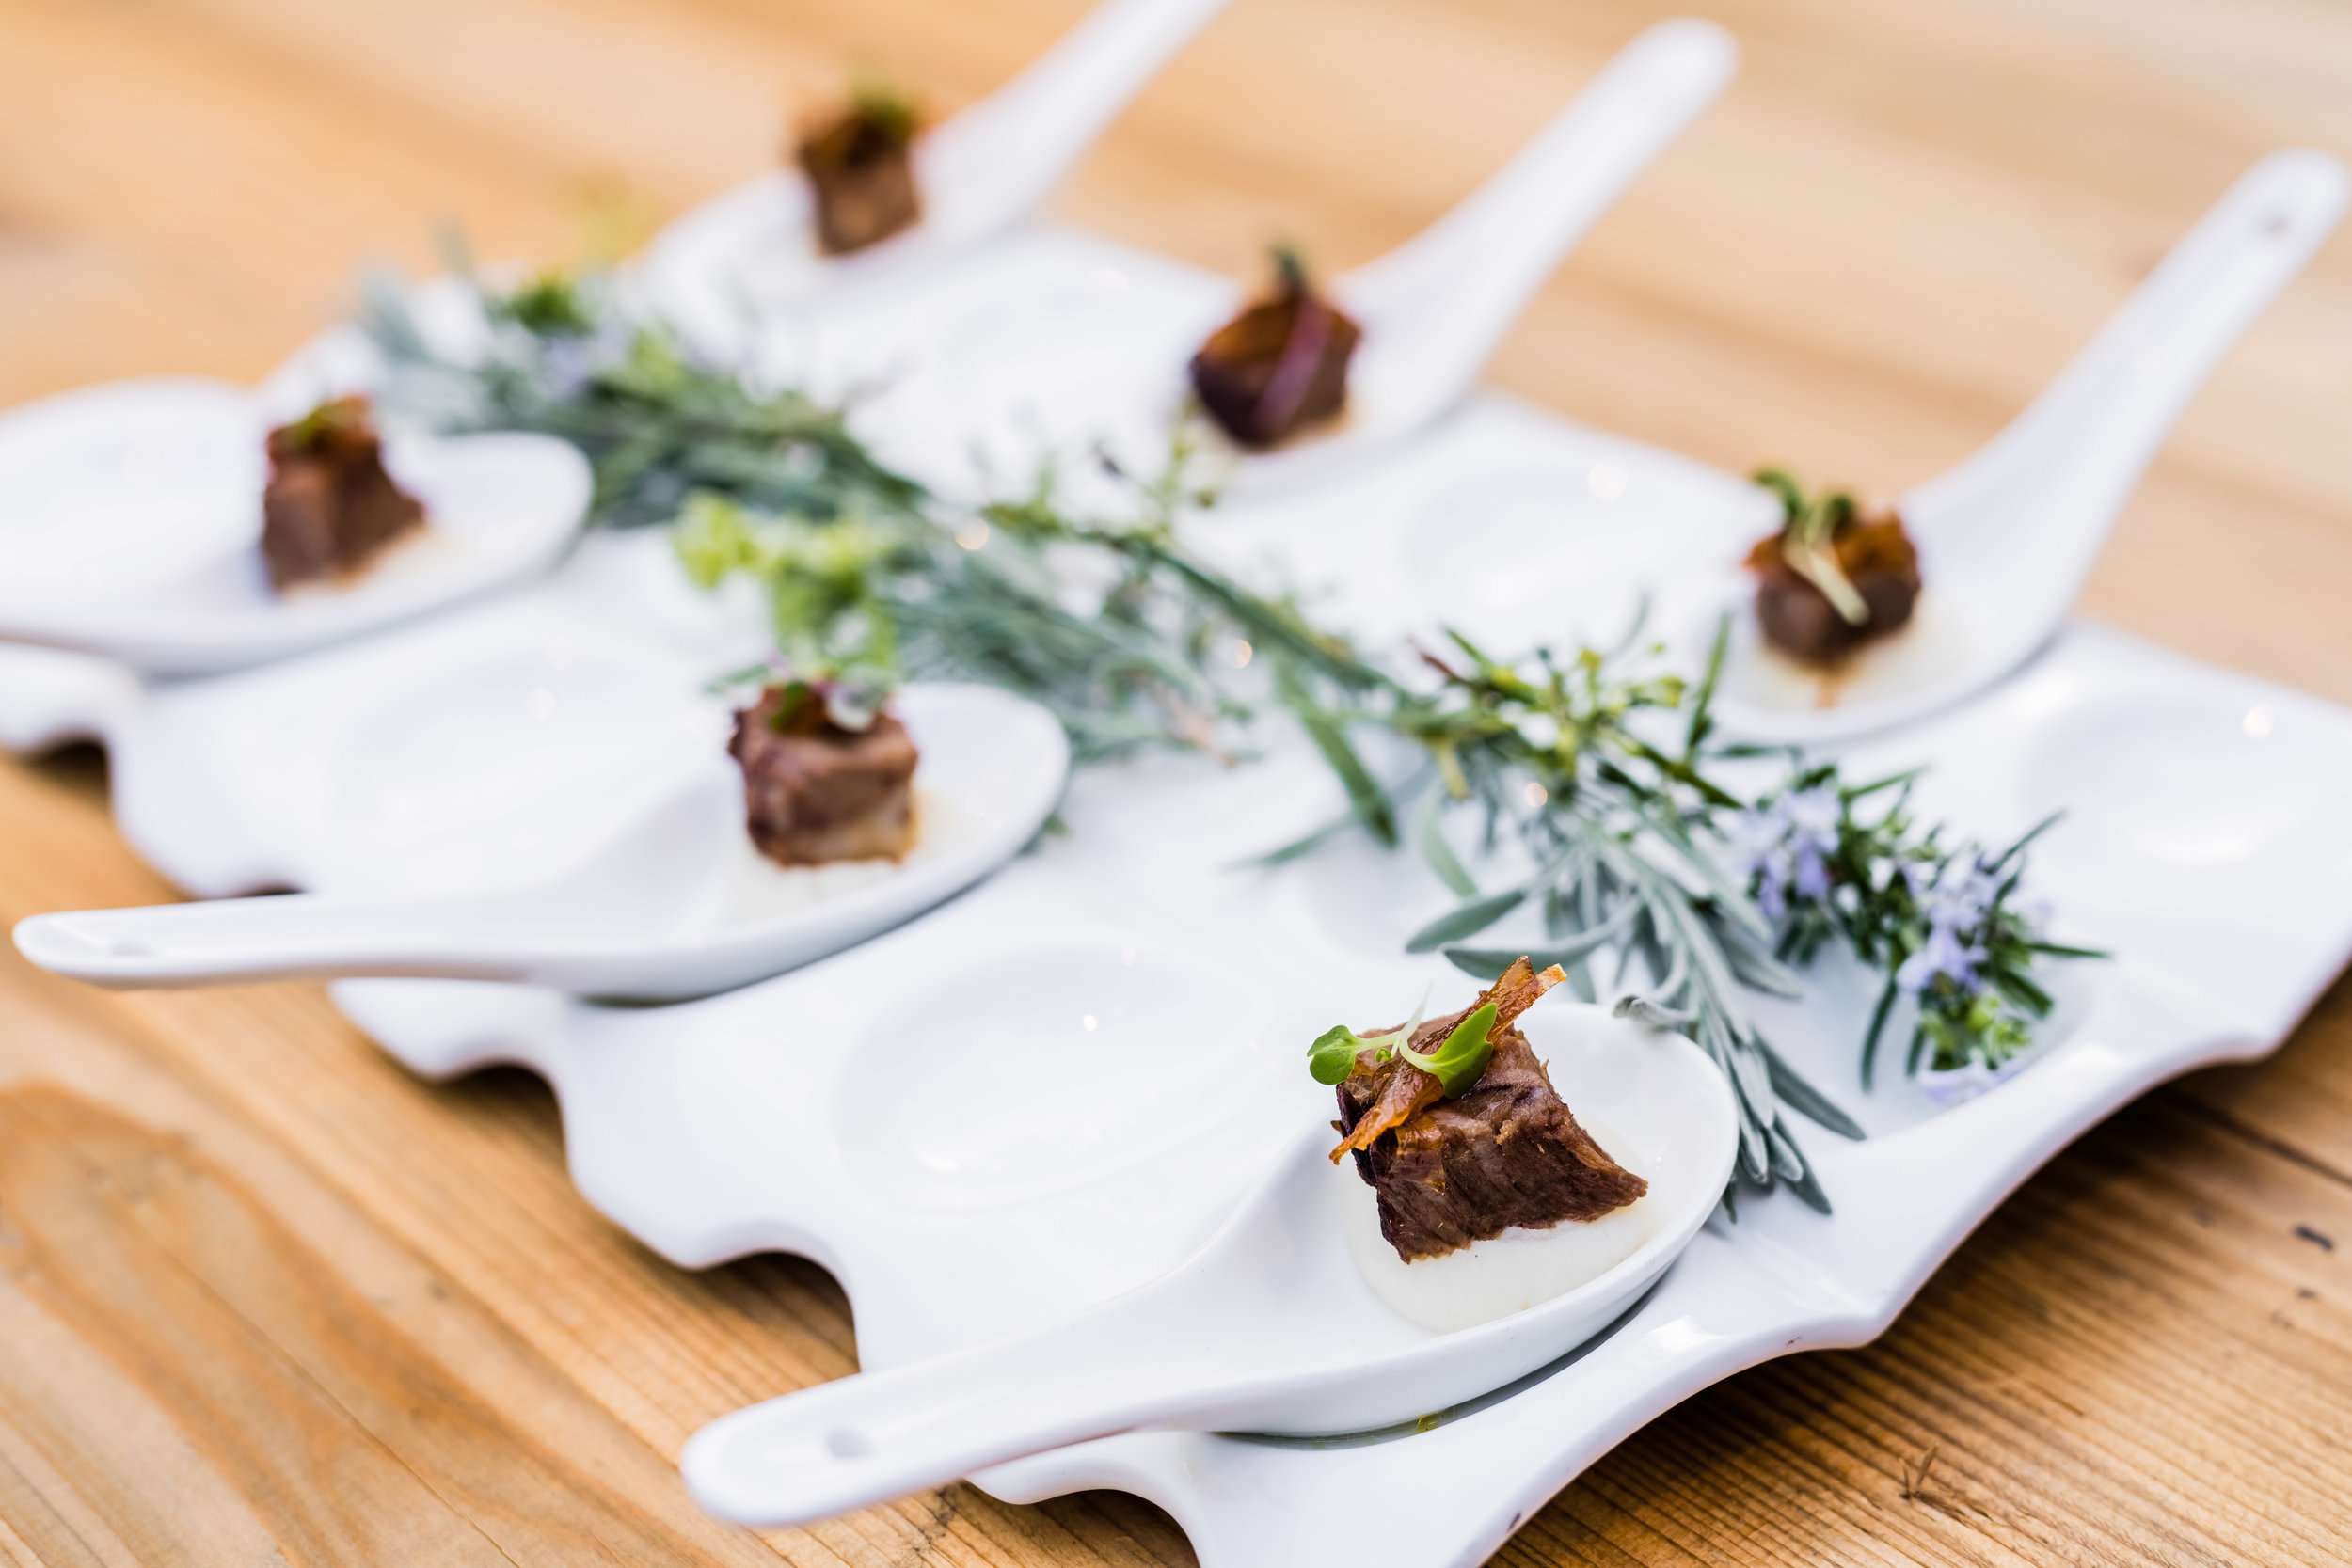 Candied Bacon Short Rib Amuse